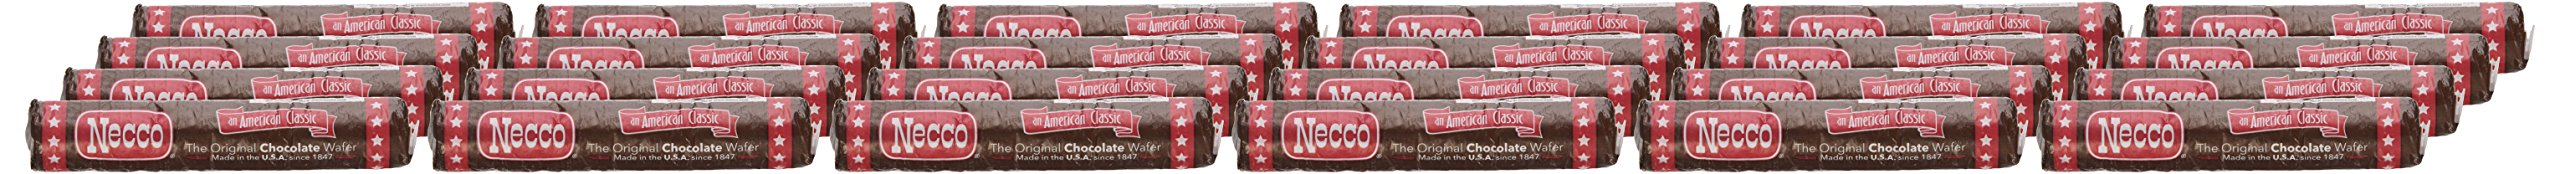 NECCO Necco Wafers, Chocolate Rolls, 2.02-Ounce Packages (Pack of 24) by Necco (Image #2)